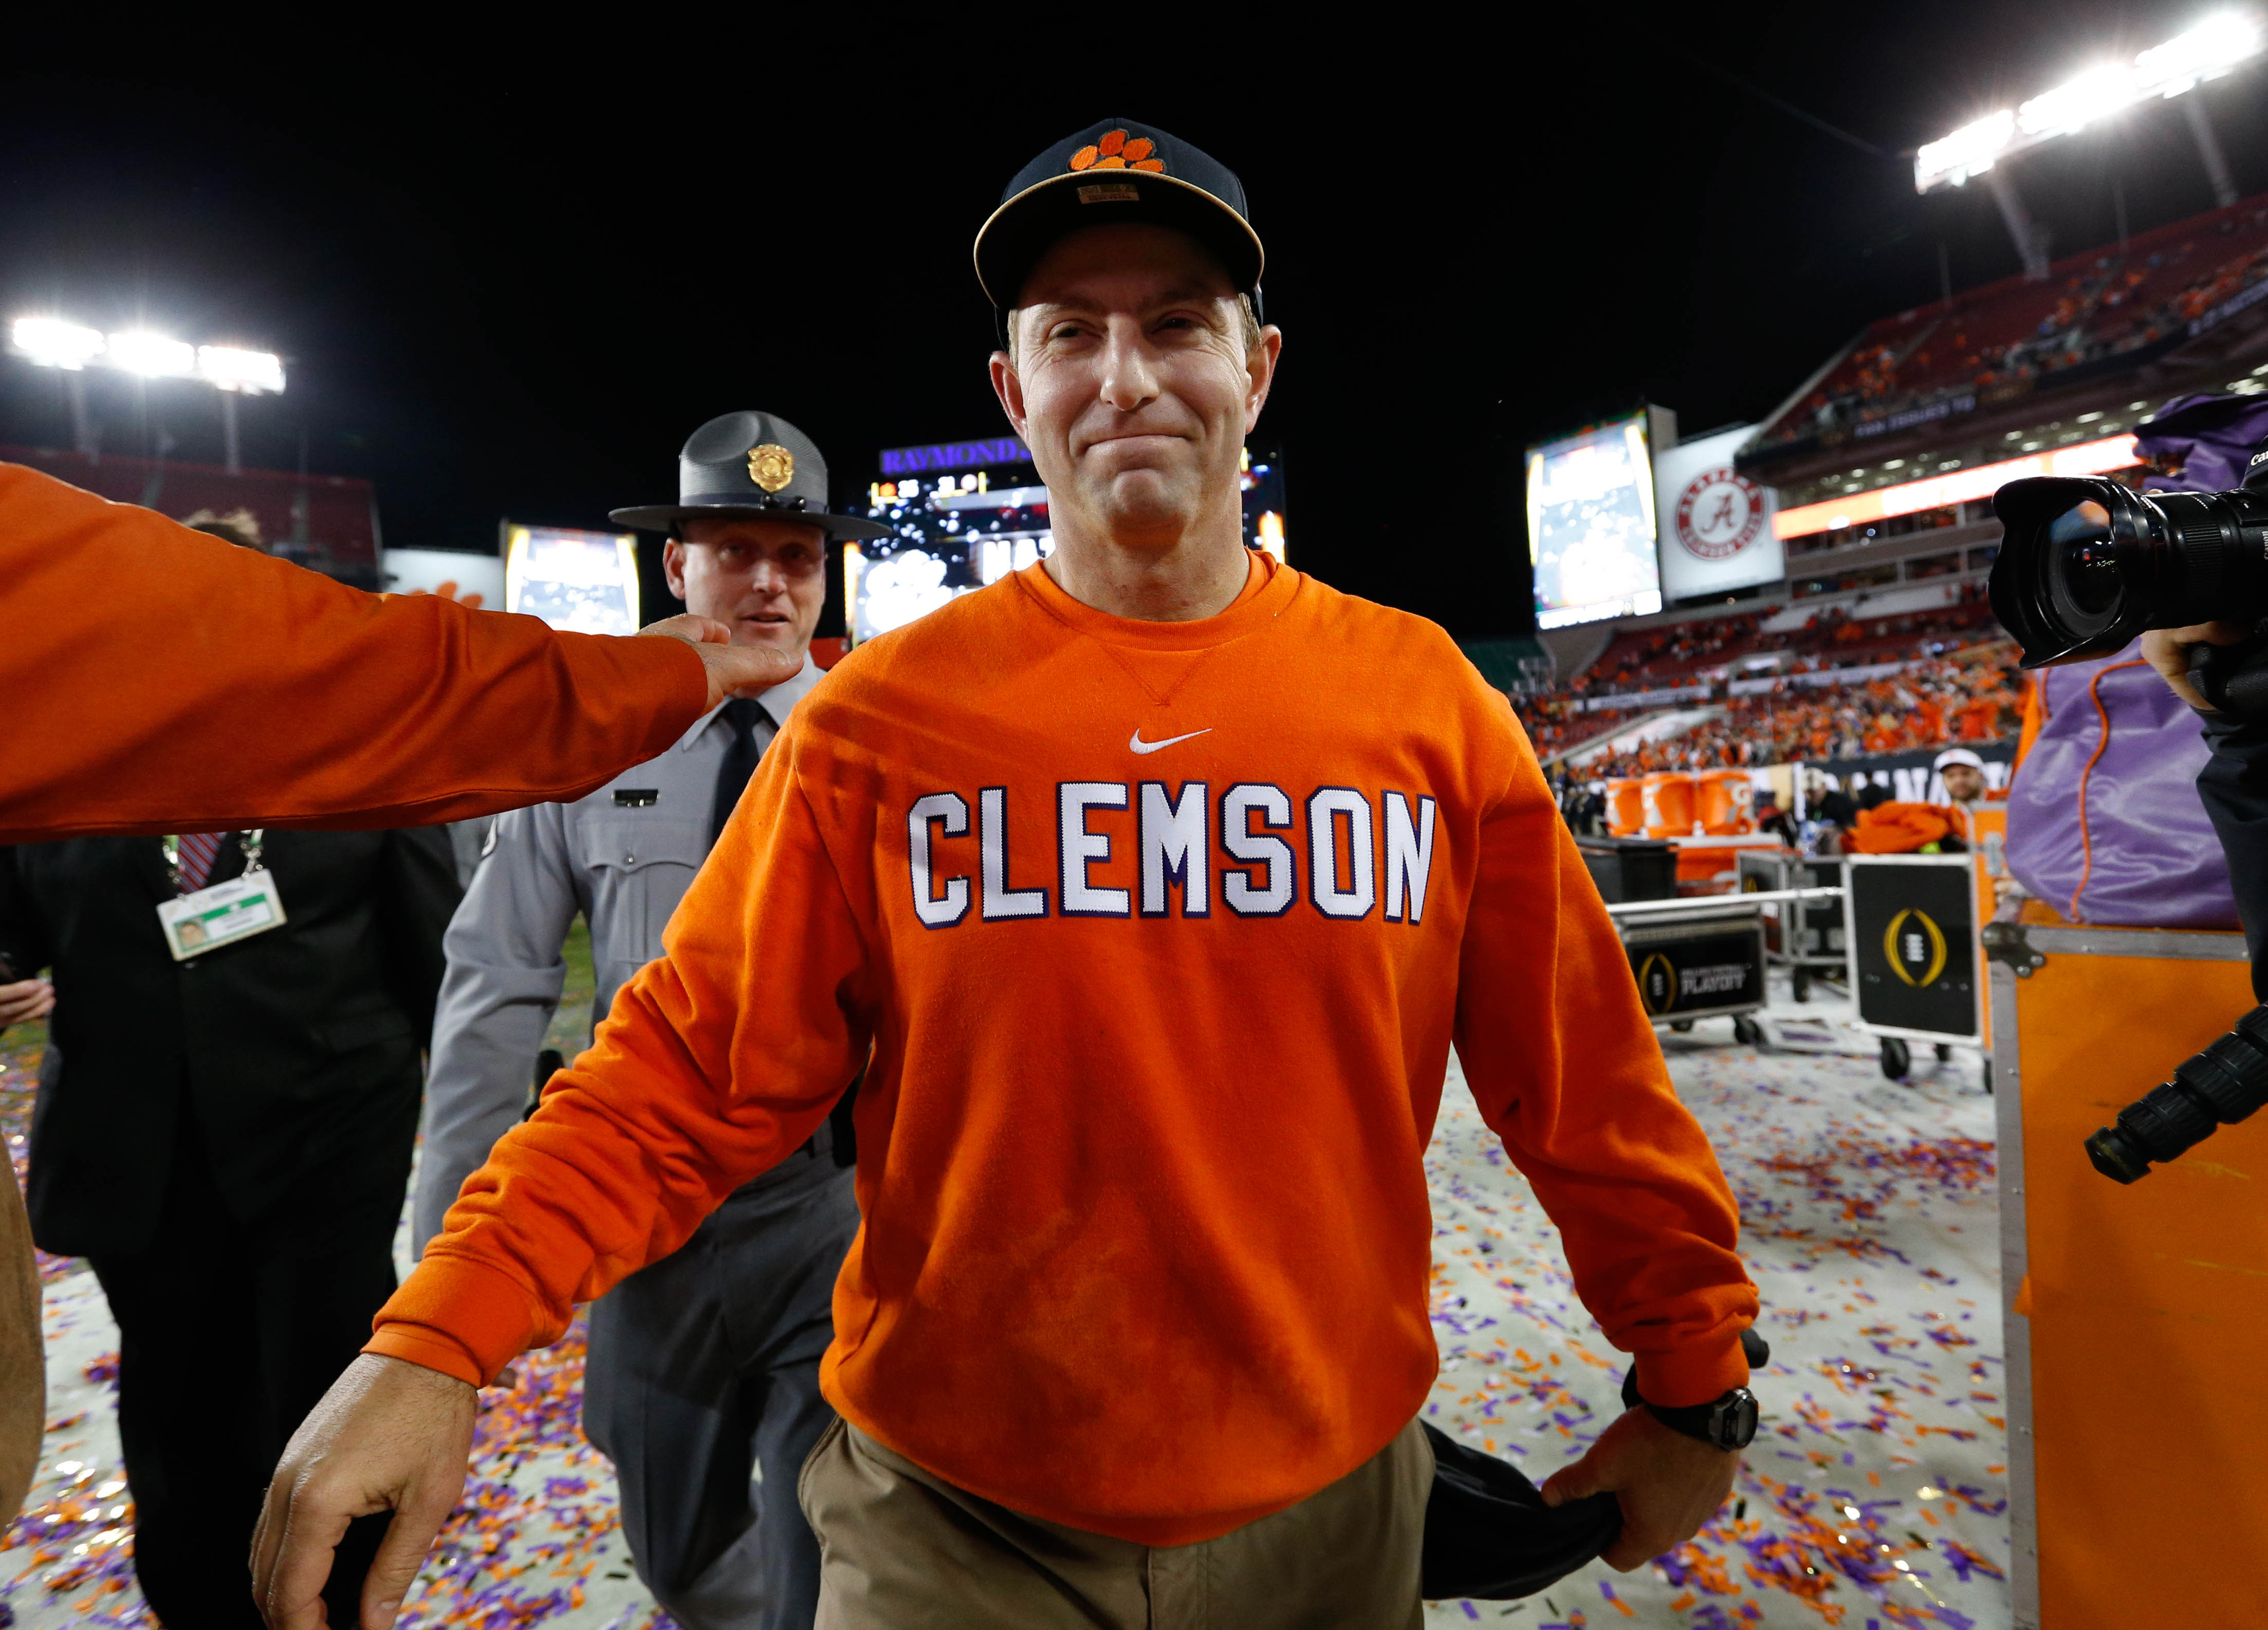 Clemson Football: Top 7 Coaches Ranked by Playing Career ...